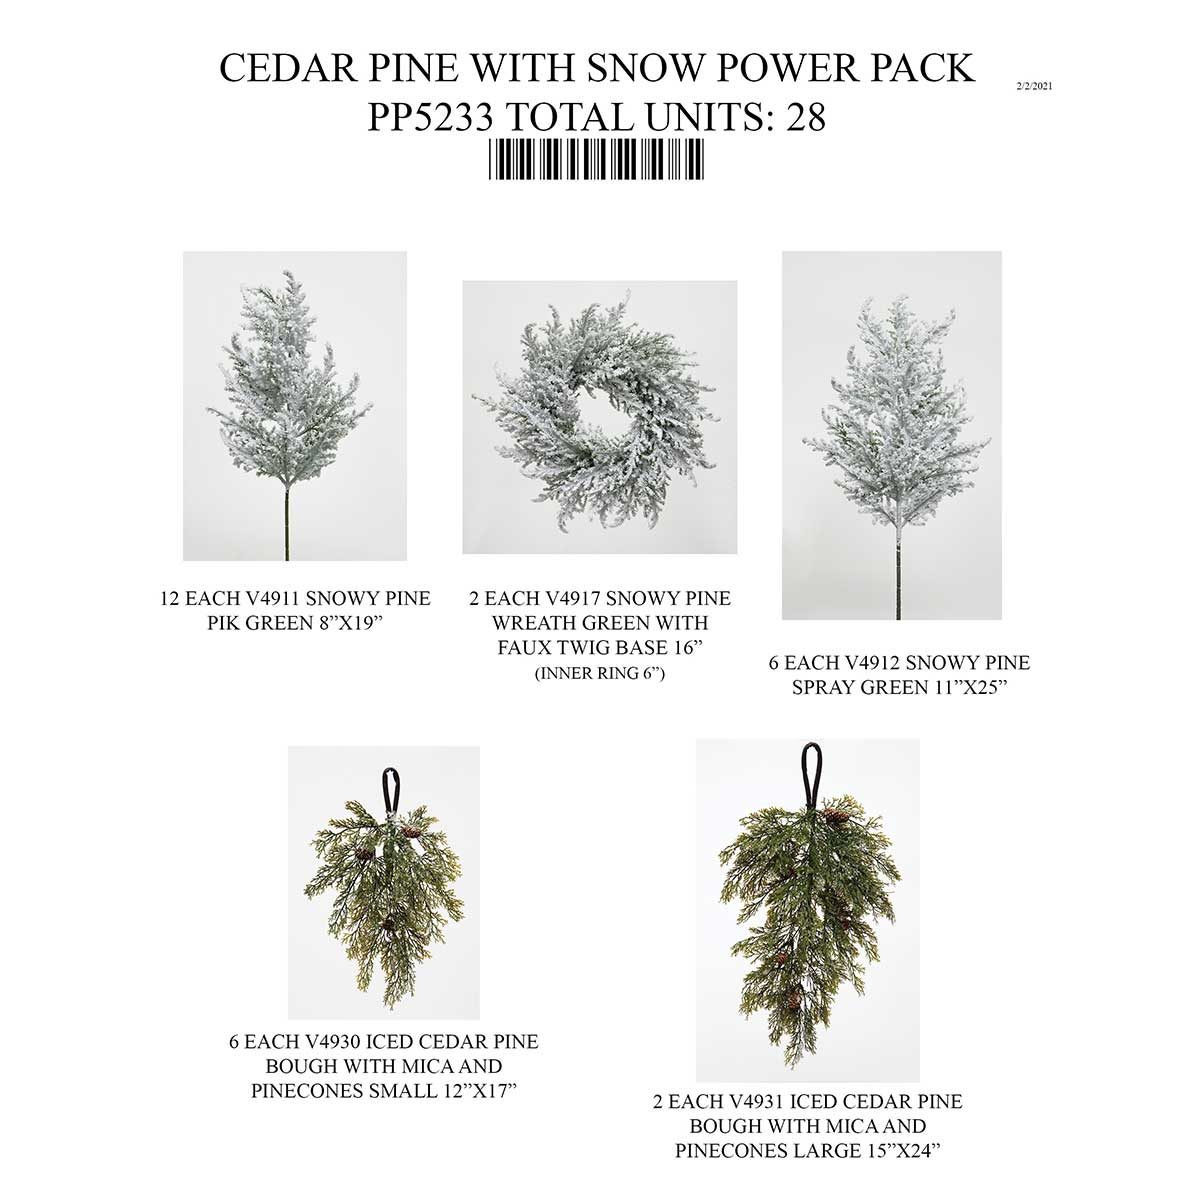 CEDAR PINE WITH SNOW POWER PACK 28 UNITS